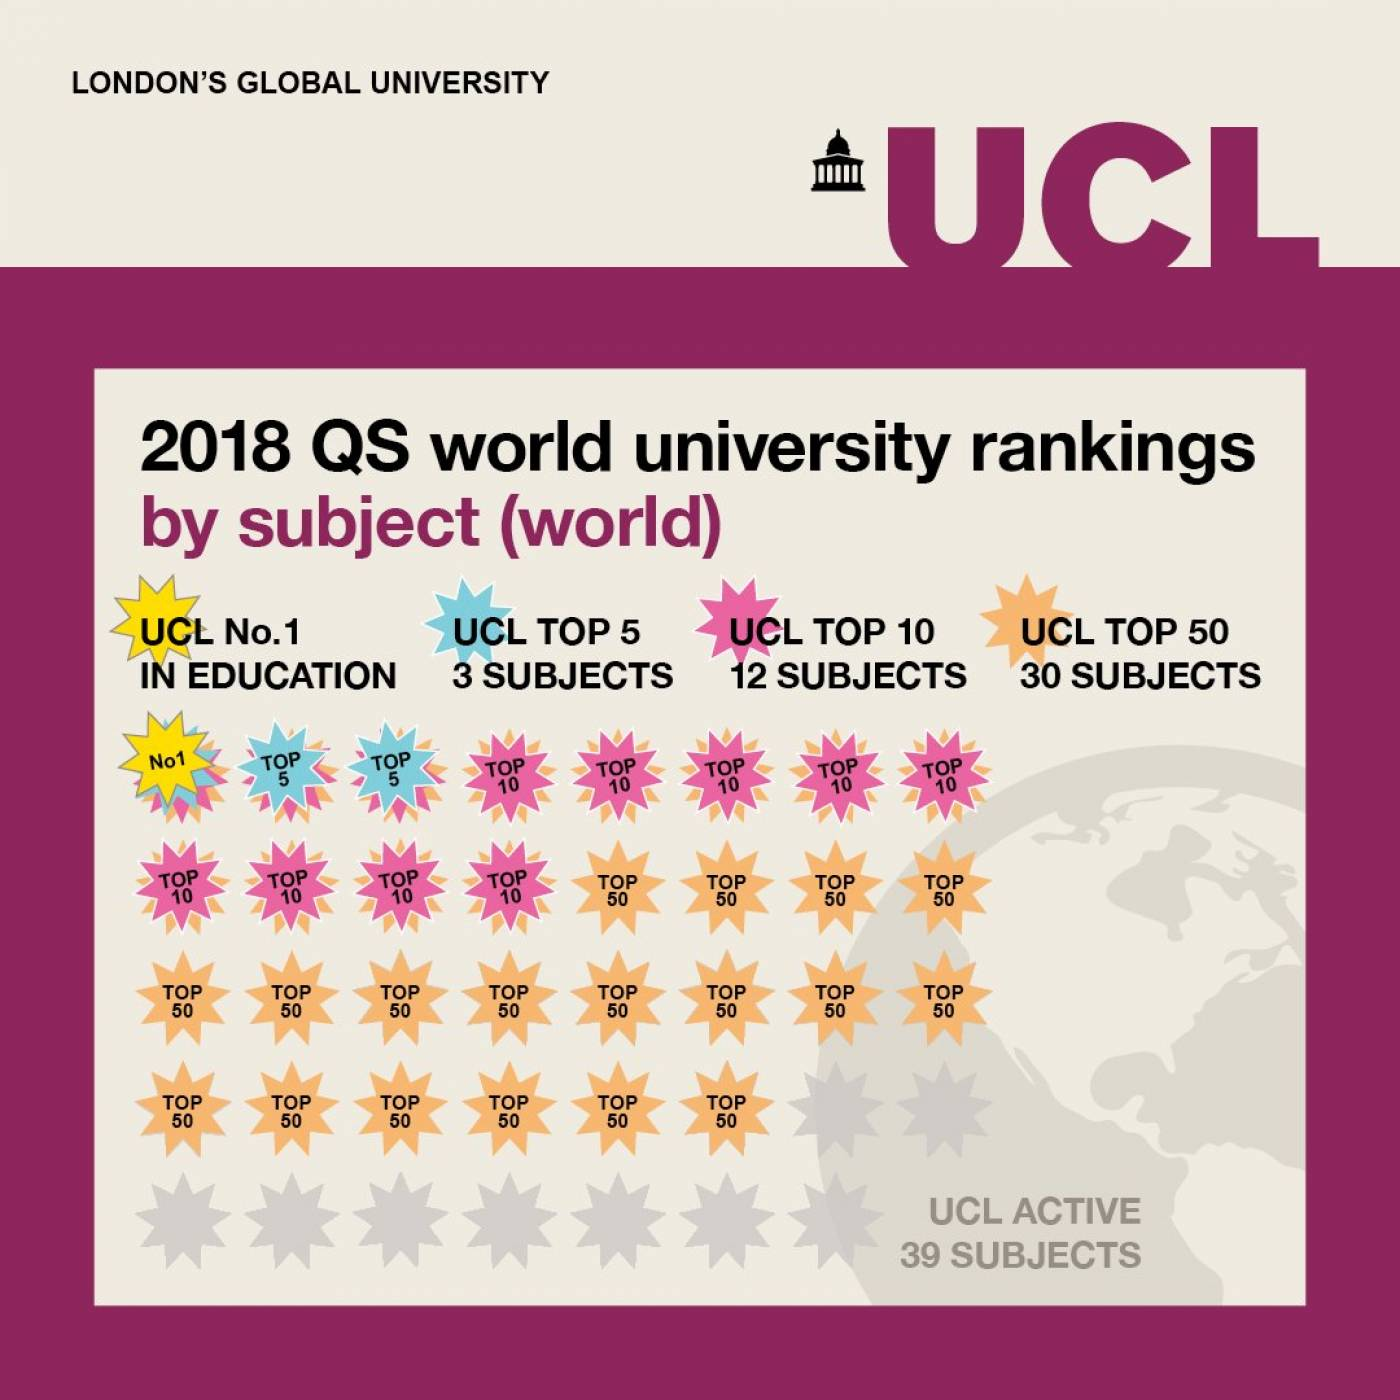 2018 QS world university rankings by subject (world)